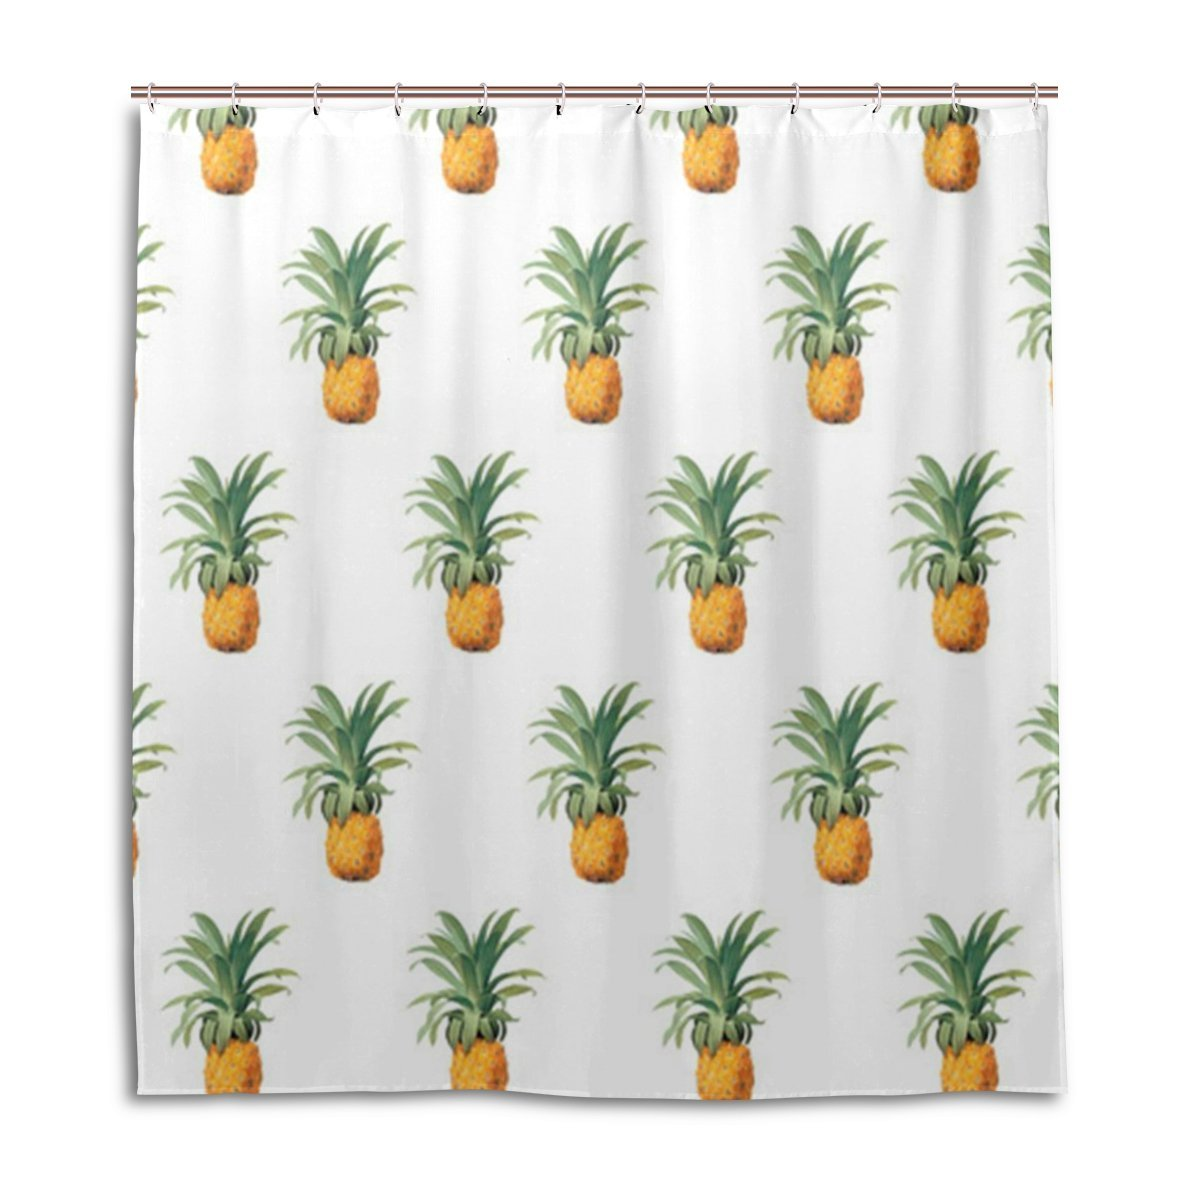 nanaz pineapple pattern print polyester fabric shower curtain for home bathroom decorative bath curtains with plastic hooks